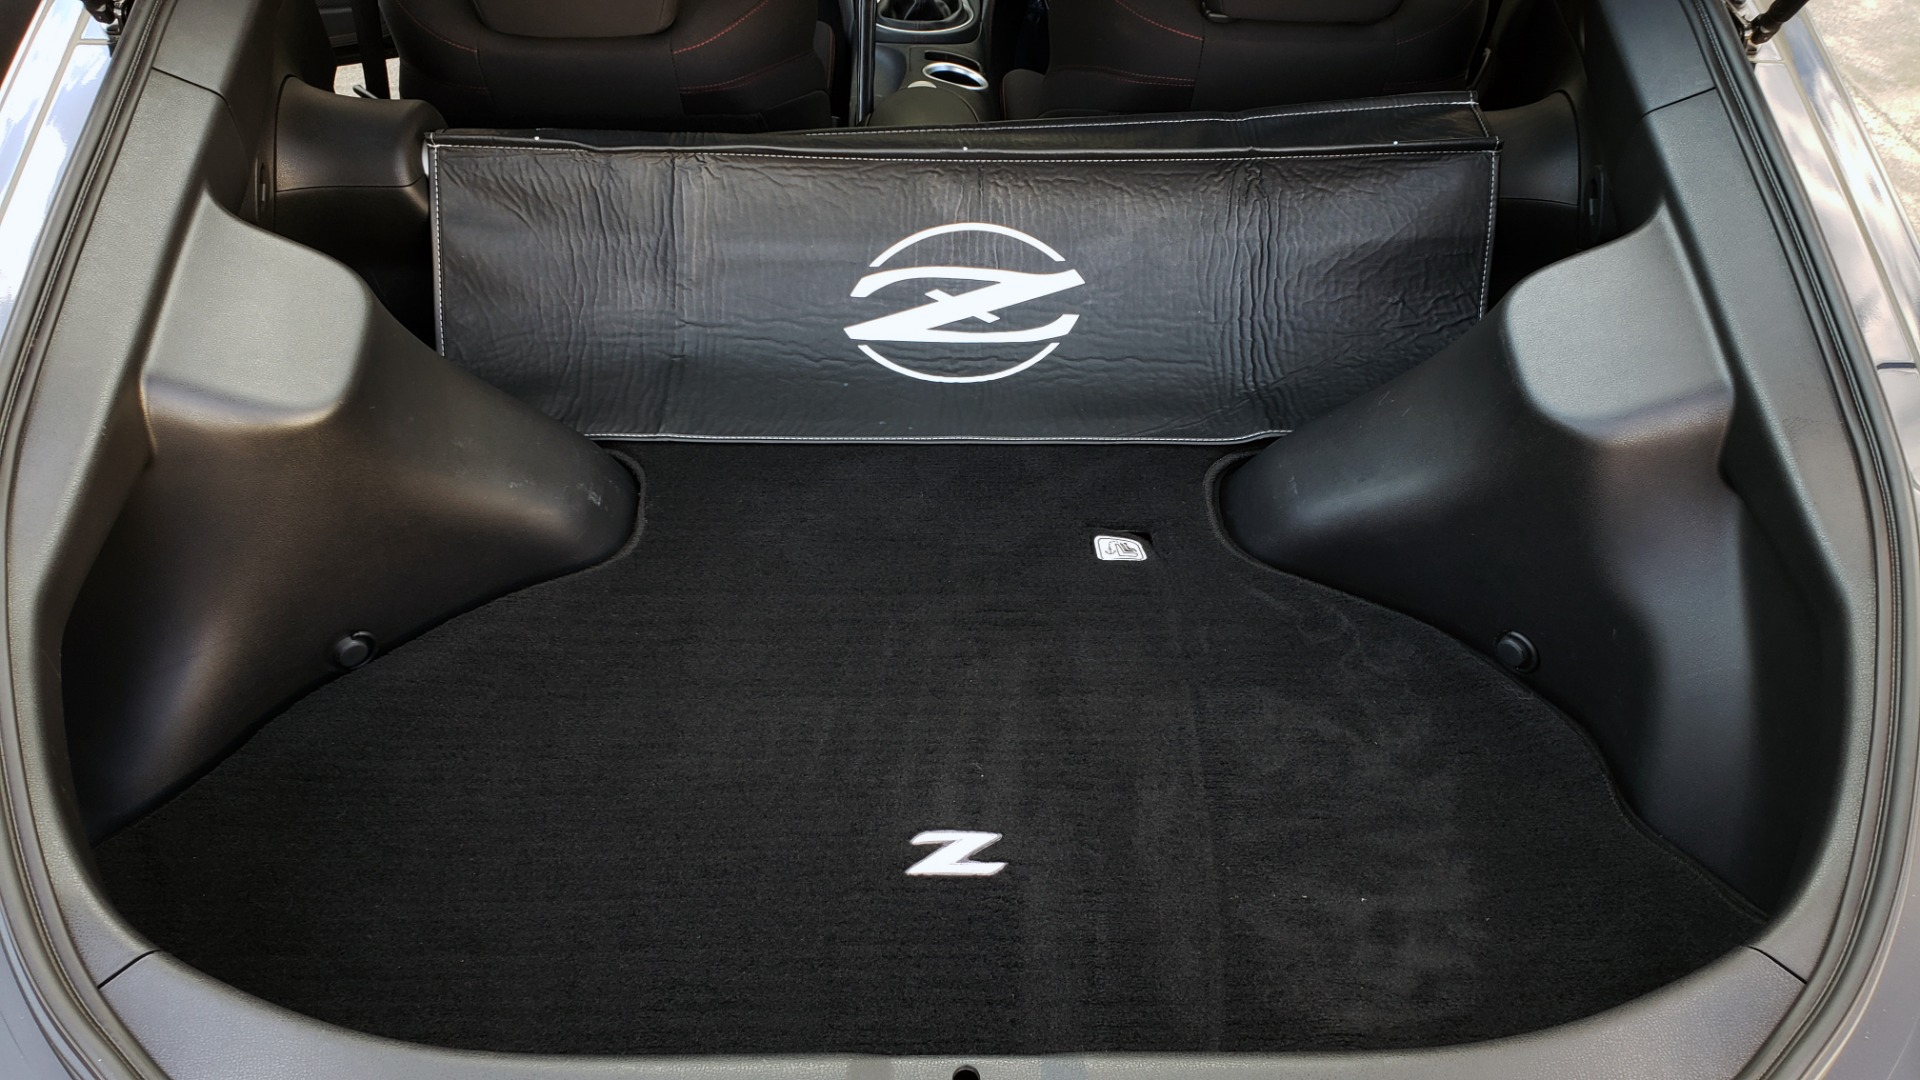 Used 2014 Nissan 370Z NISMO / 6-SPD MAN / BOSE / 6-DISC CHANGER / NISMO MATS / REARVIEW for sale Sold at Formula Imports in Charlotte NC 28227 70